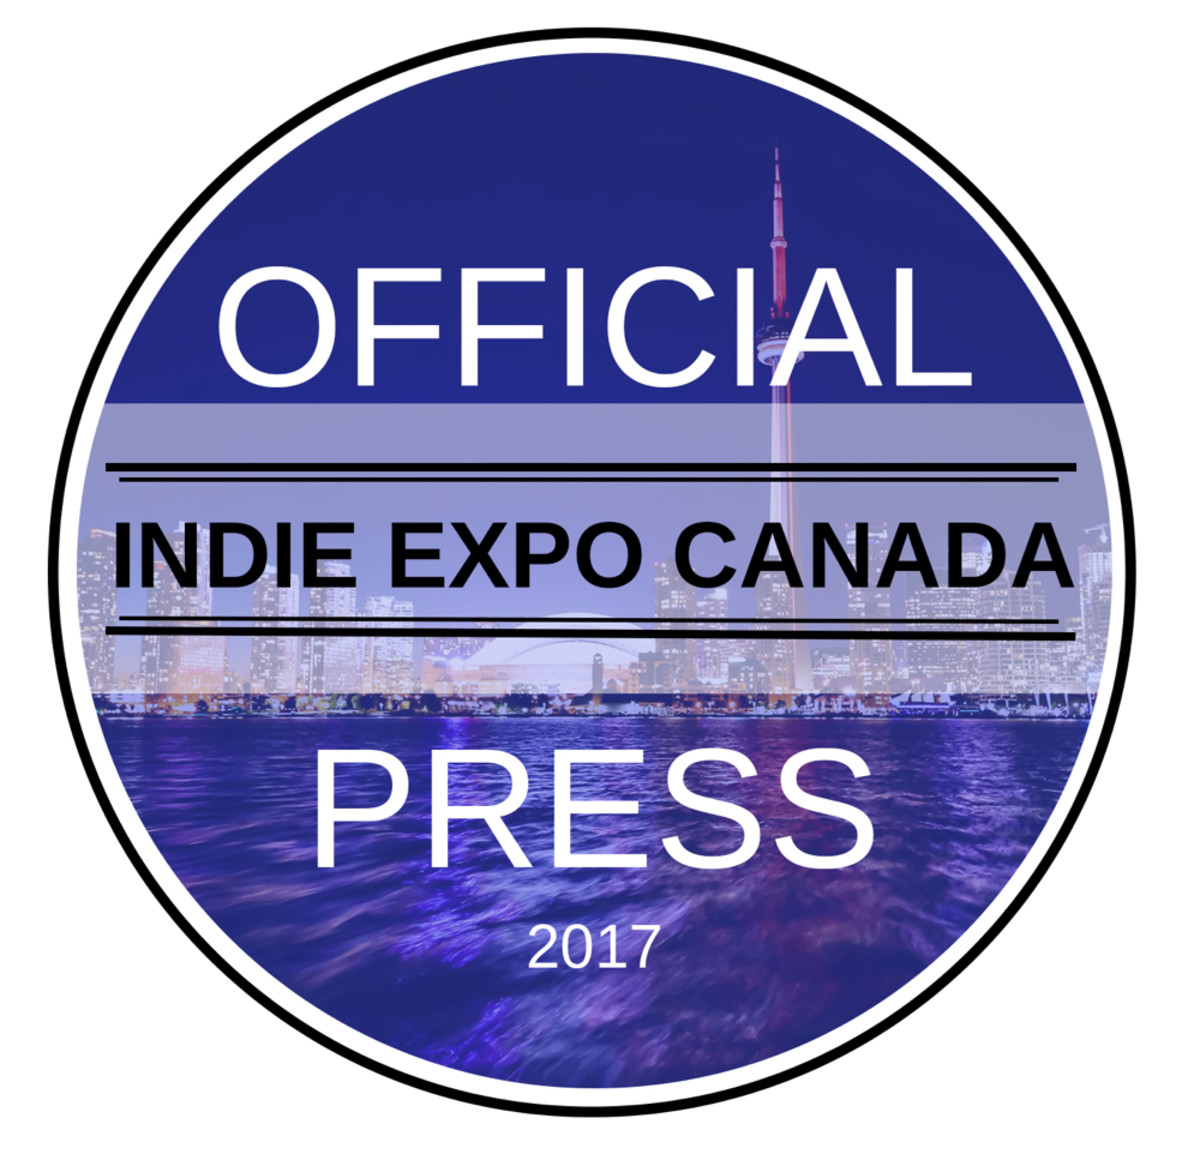 Indie Expo Canada 2017 Toronto_IEC OFFICIAL_PRESS